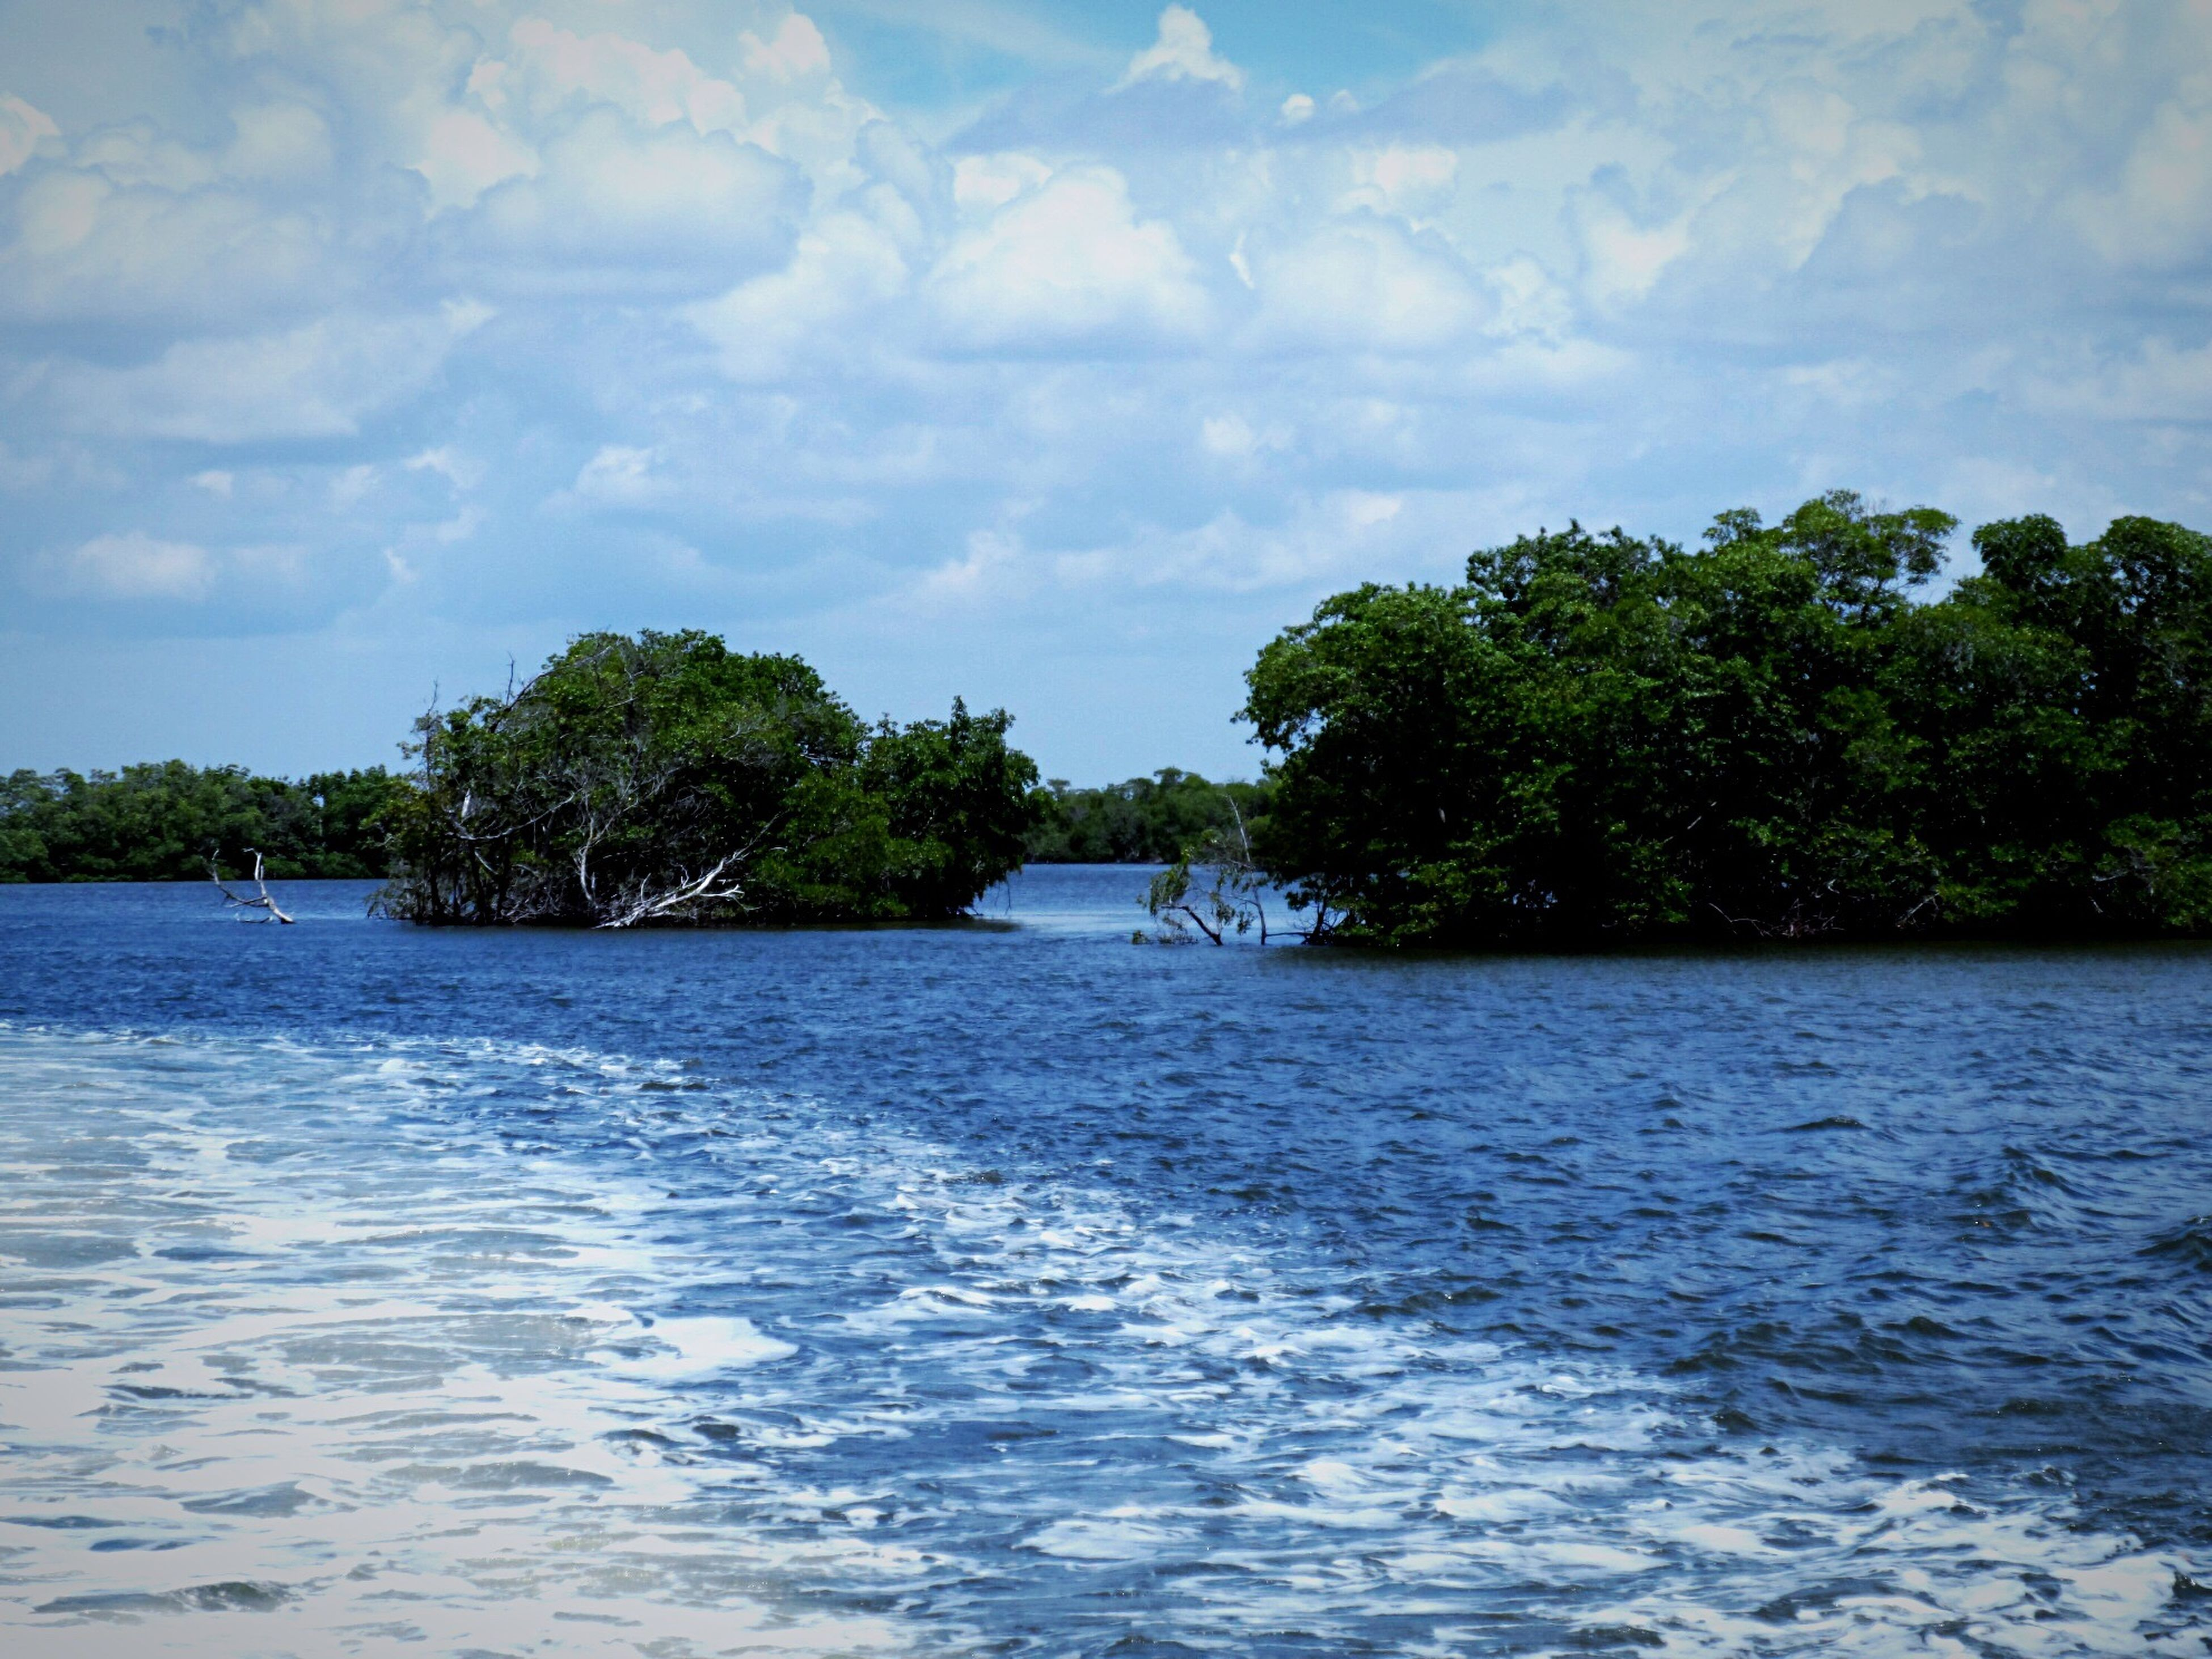 tree, water, sky, waterfront, cloud - sky, tranquil scene, tranquility, rippled, scenics, beauty in nature, cloud, nature, cloudy, river, lake, sea, day, idyllic, growth, outdoors